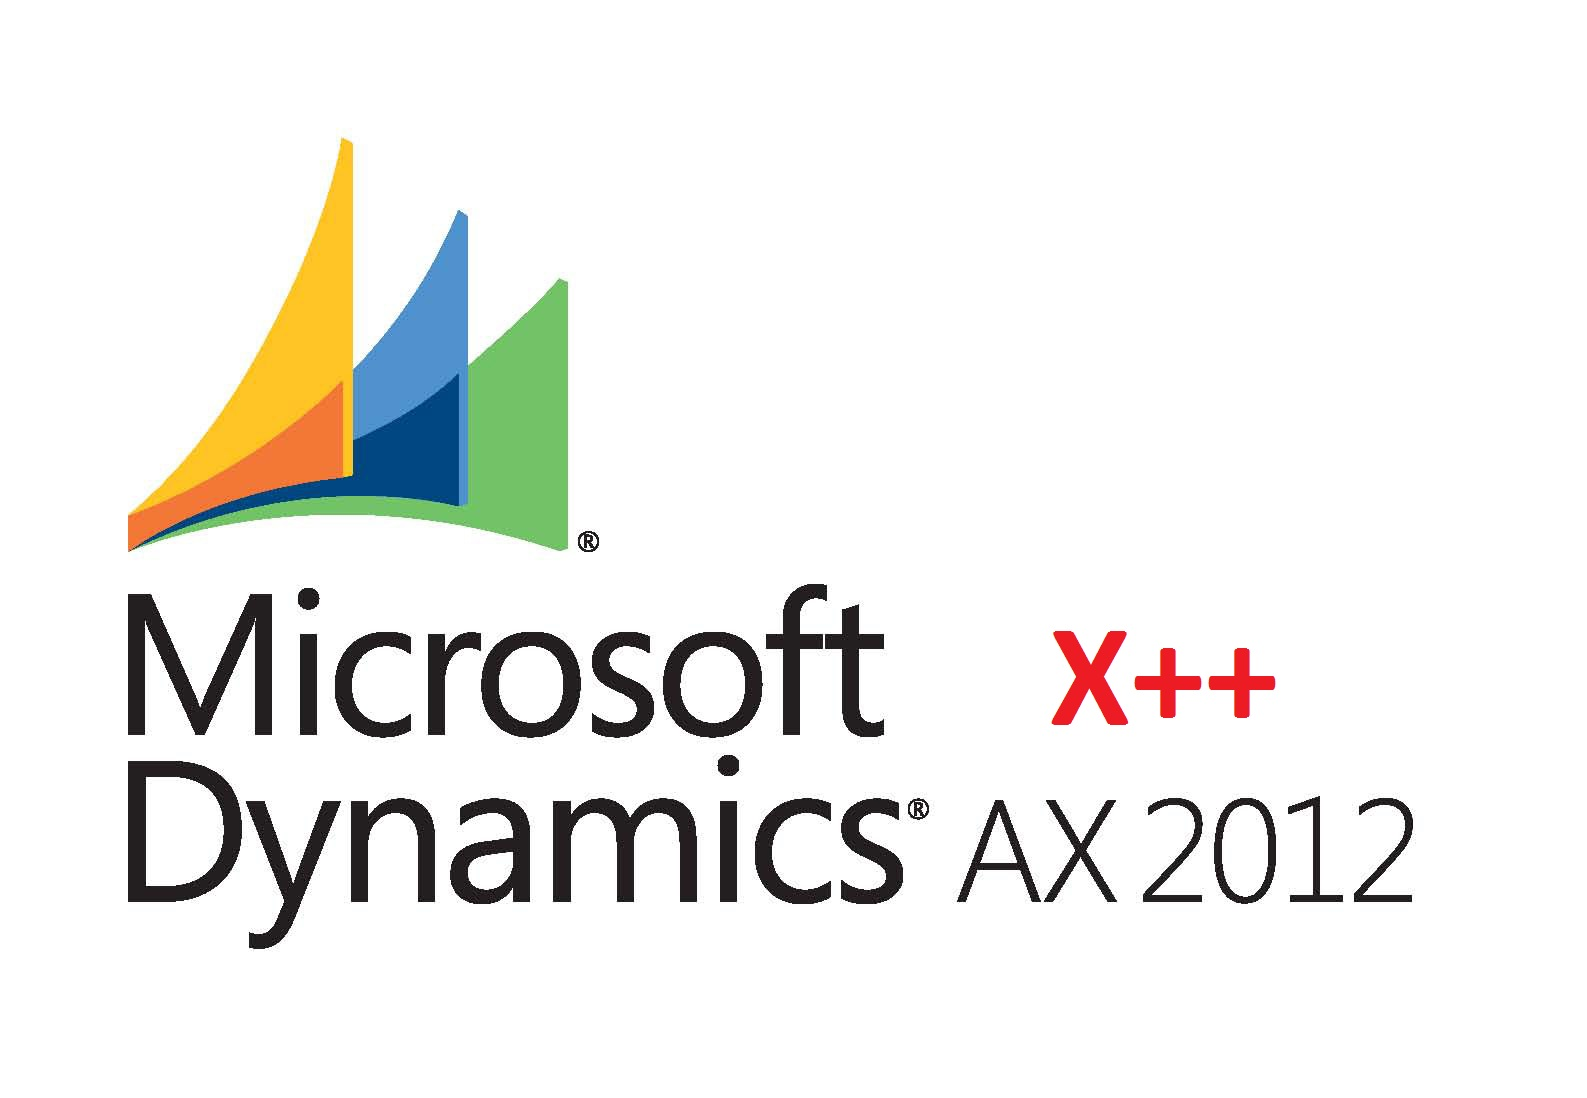 Inventory Management in Dynamics AX 2012